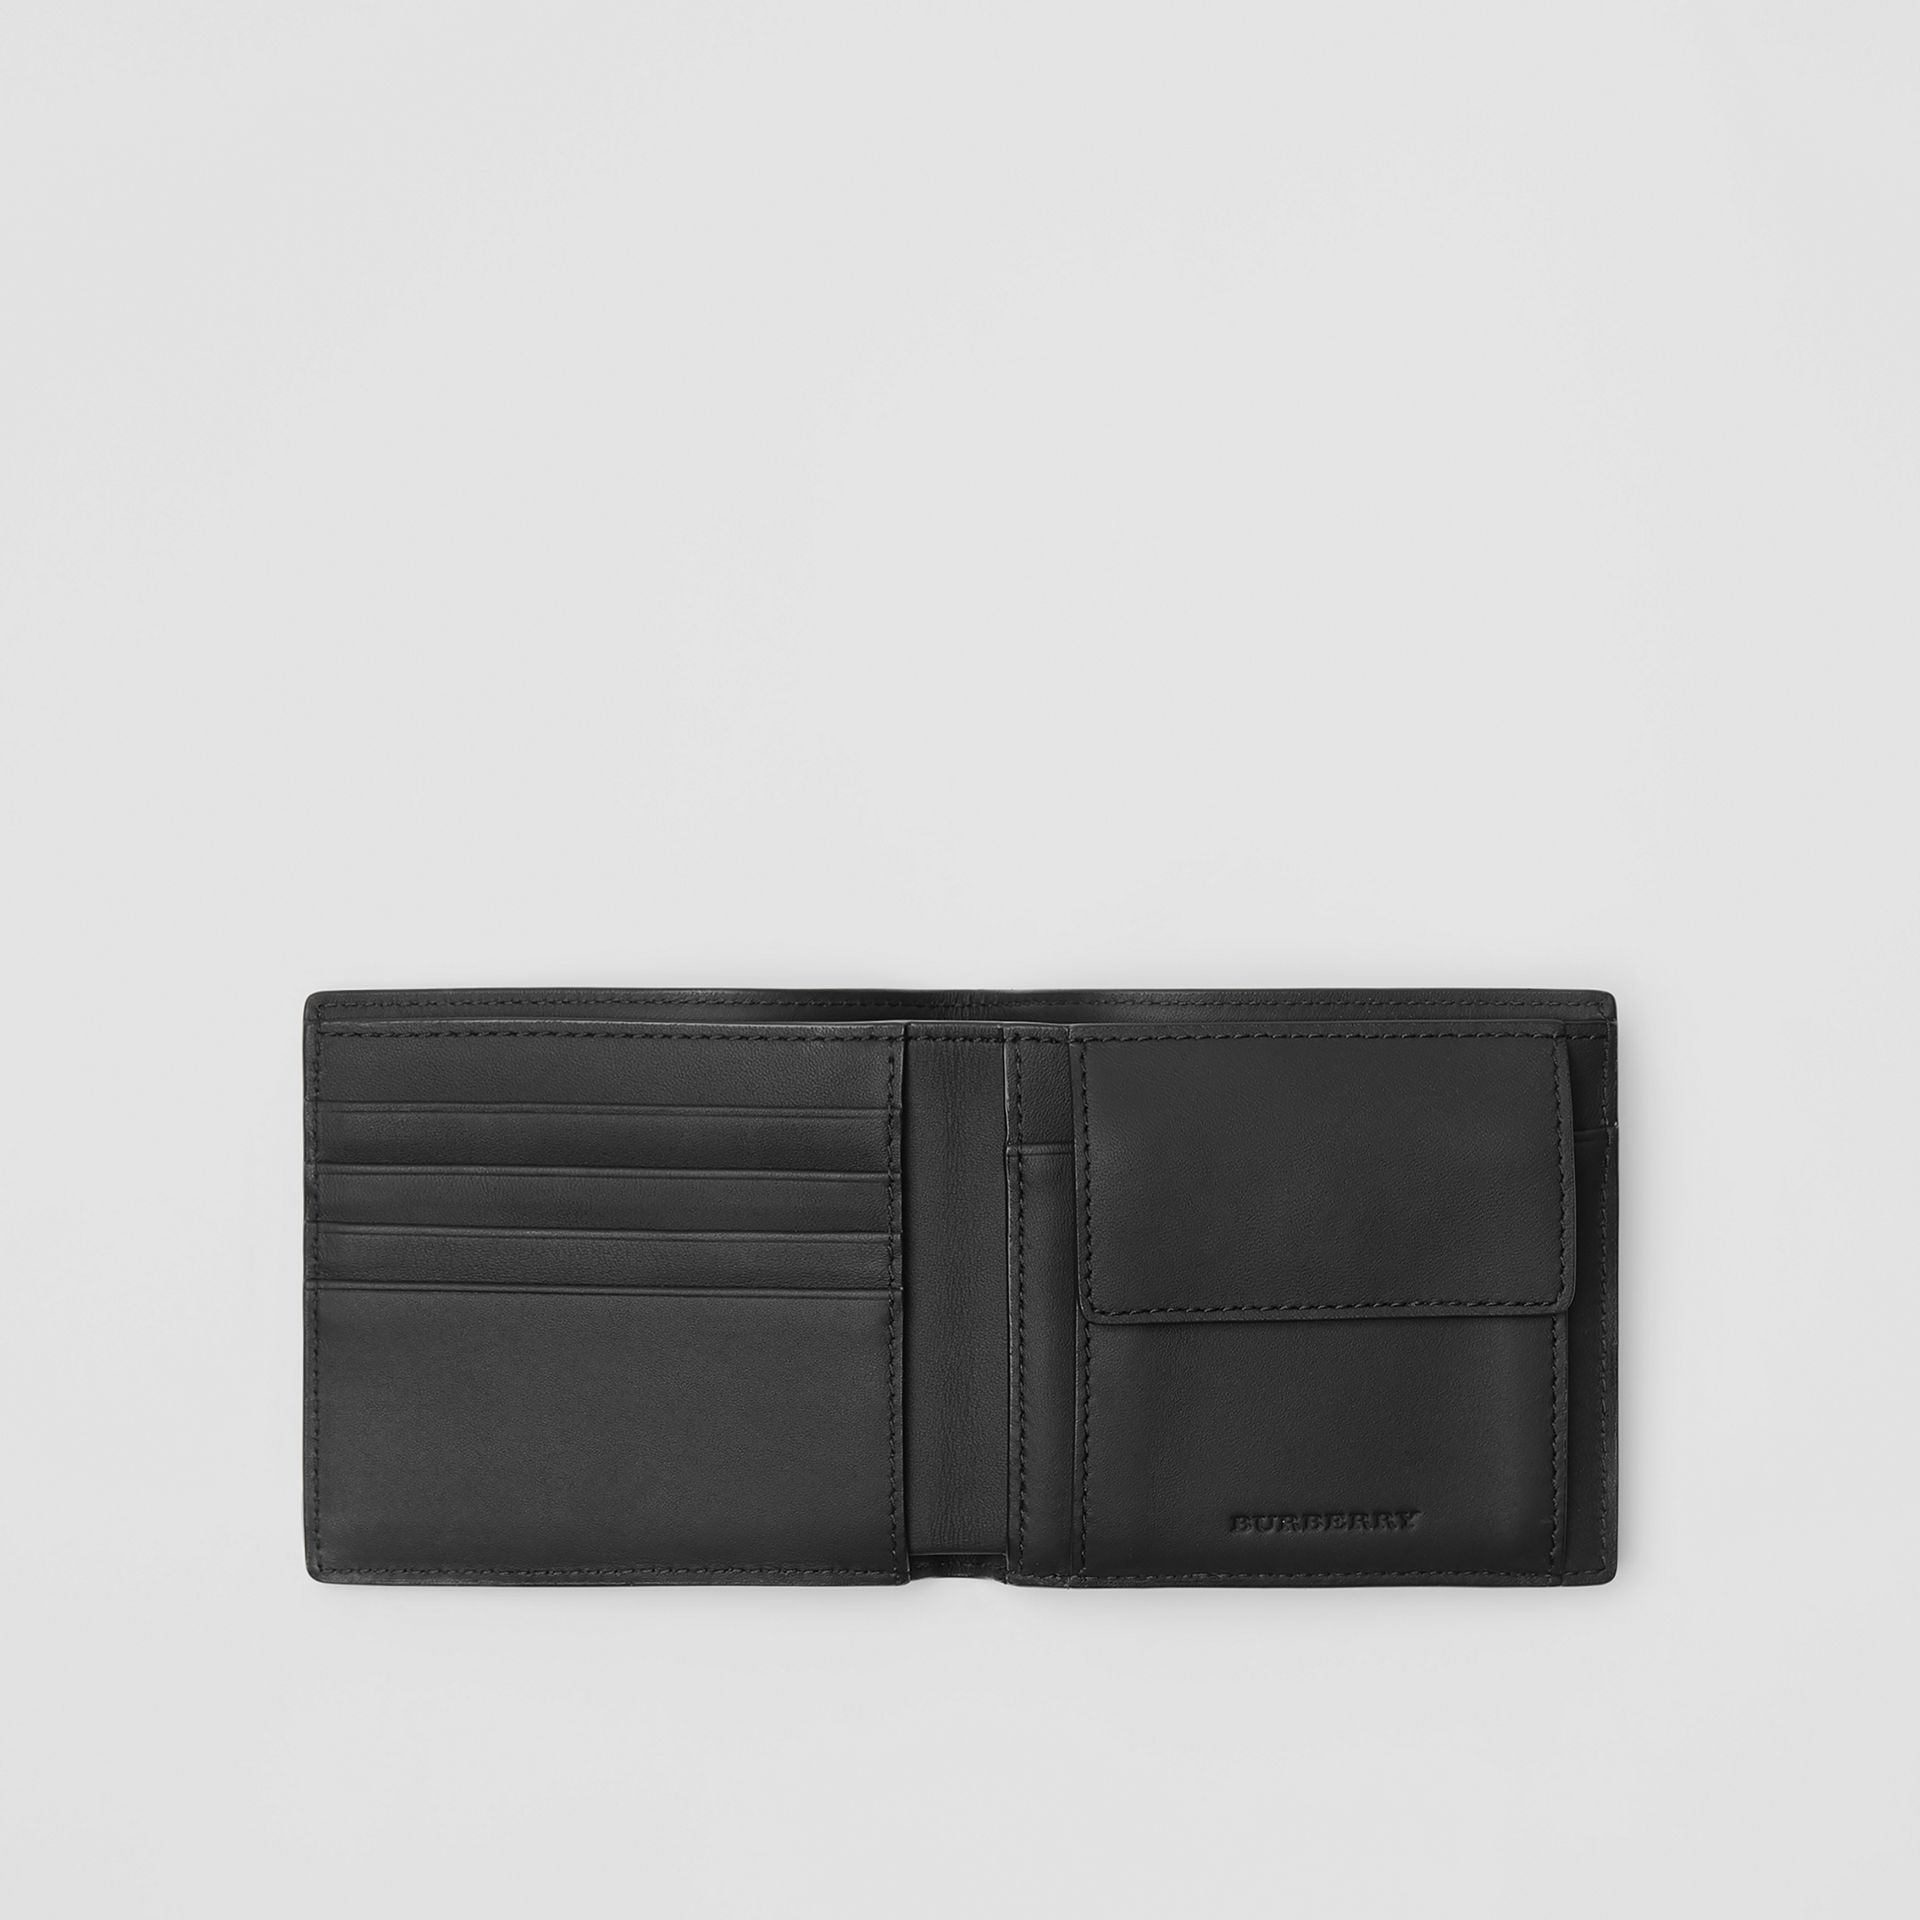 London Check International Bifold Coin Wallet in Charcoal/black - Men | Burberry Hong Kong - gallery image 2